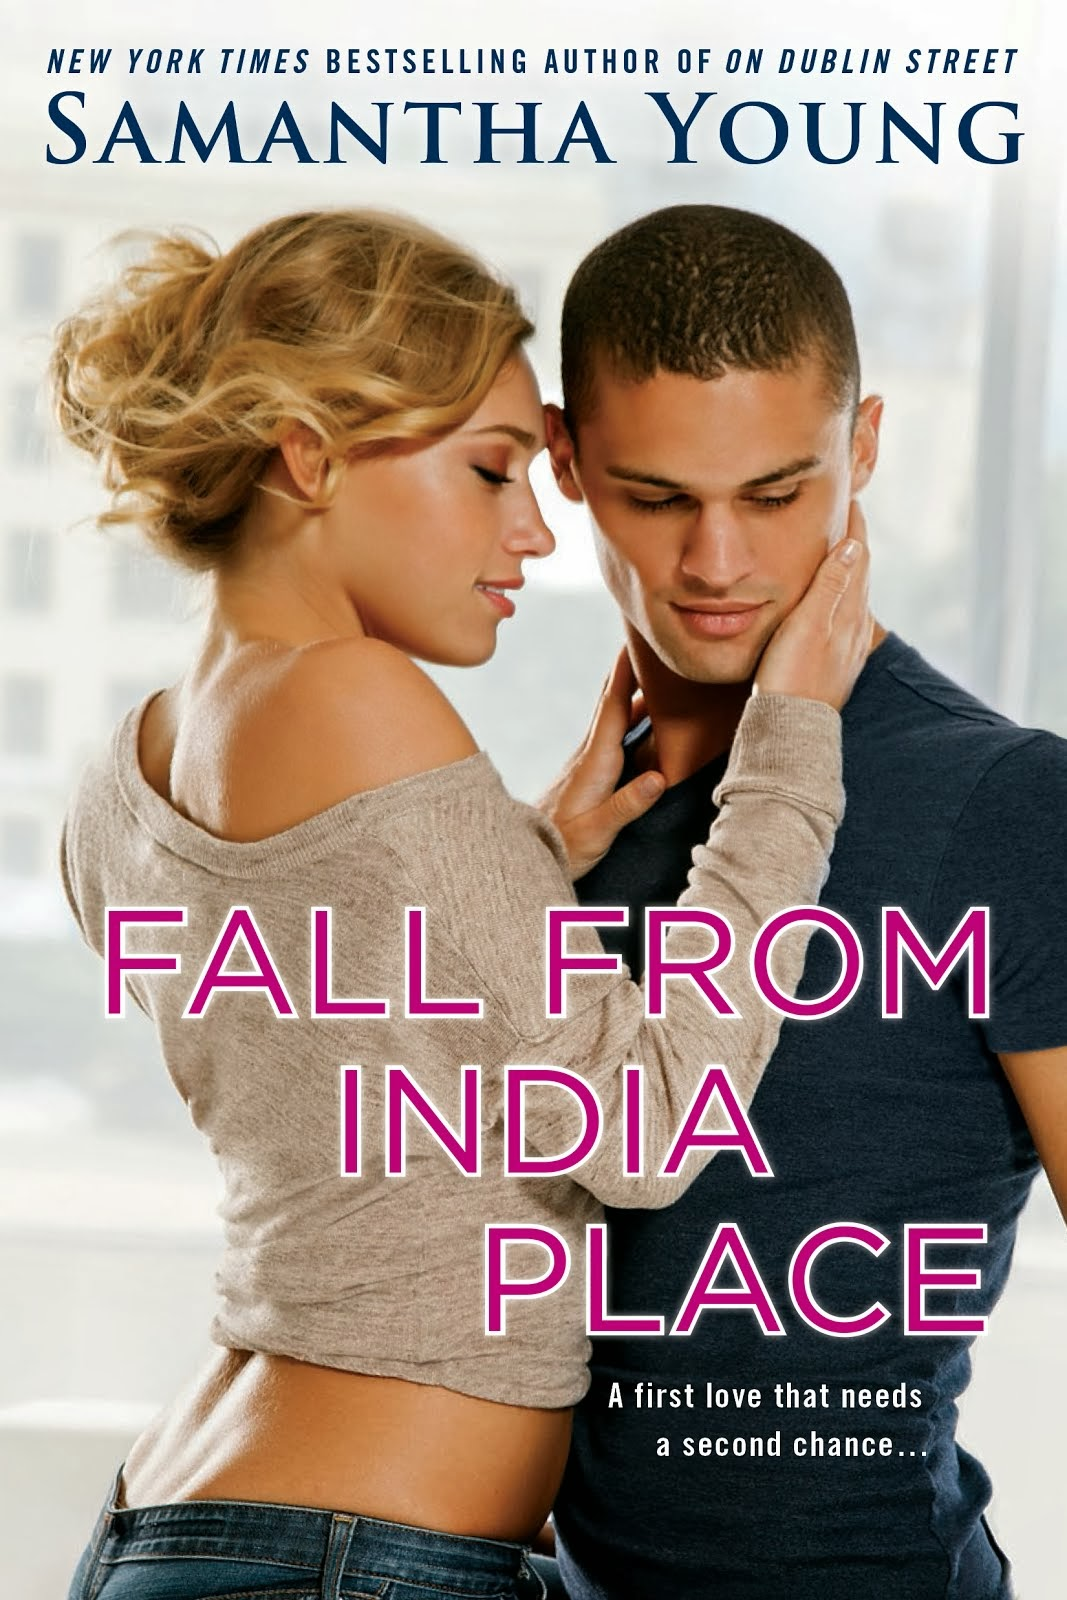 OUT NOW! FALL FROM INDIA PLACE